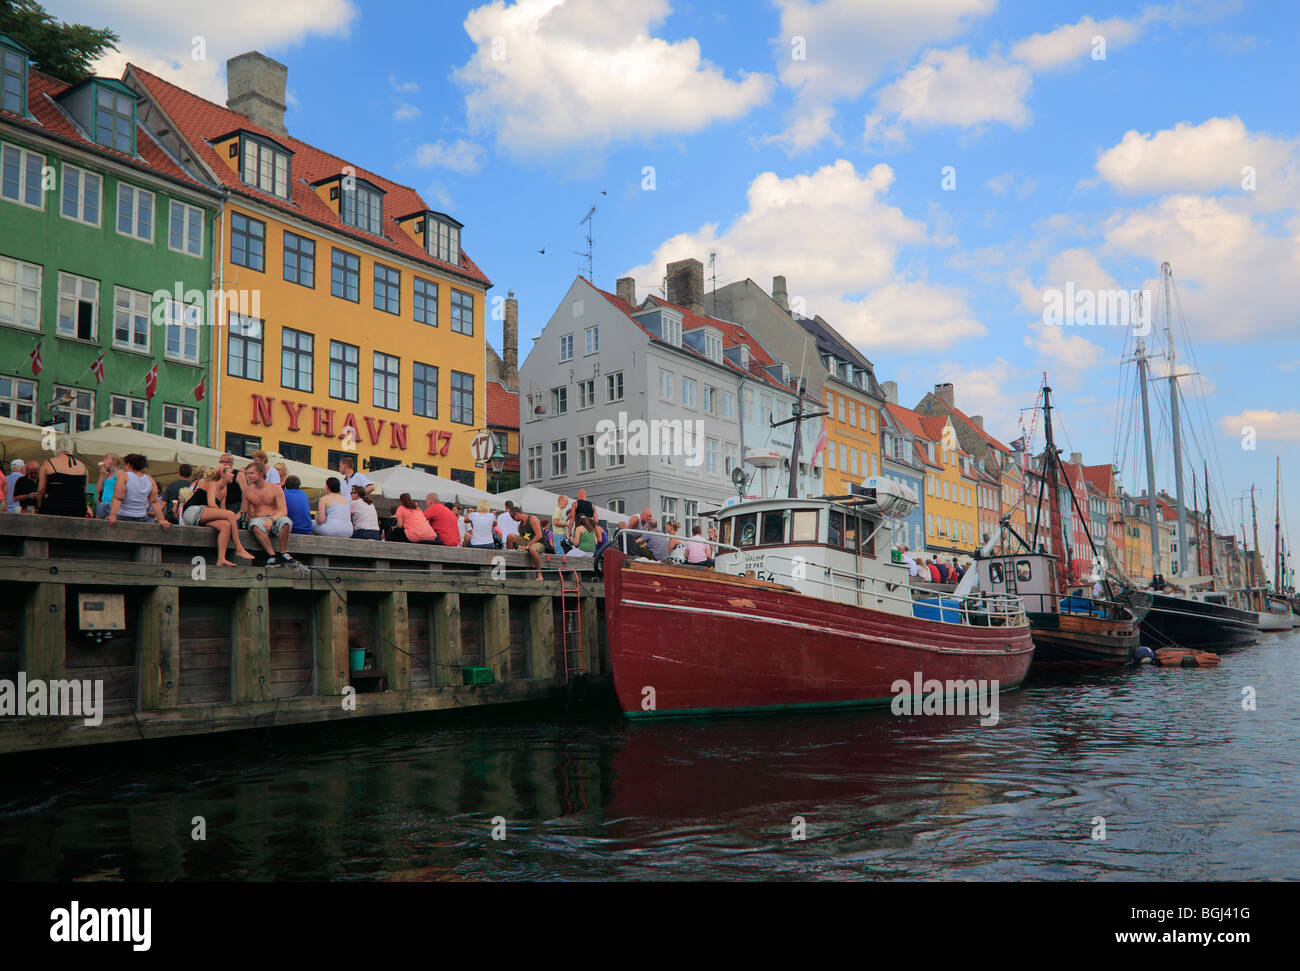 Nyhavn is a colourful 17th century waterfront, canal and popular entertainment district in Copenhagen, Denmark. - Stock Image